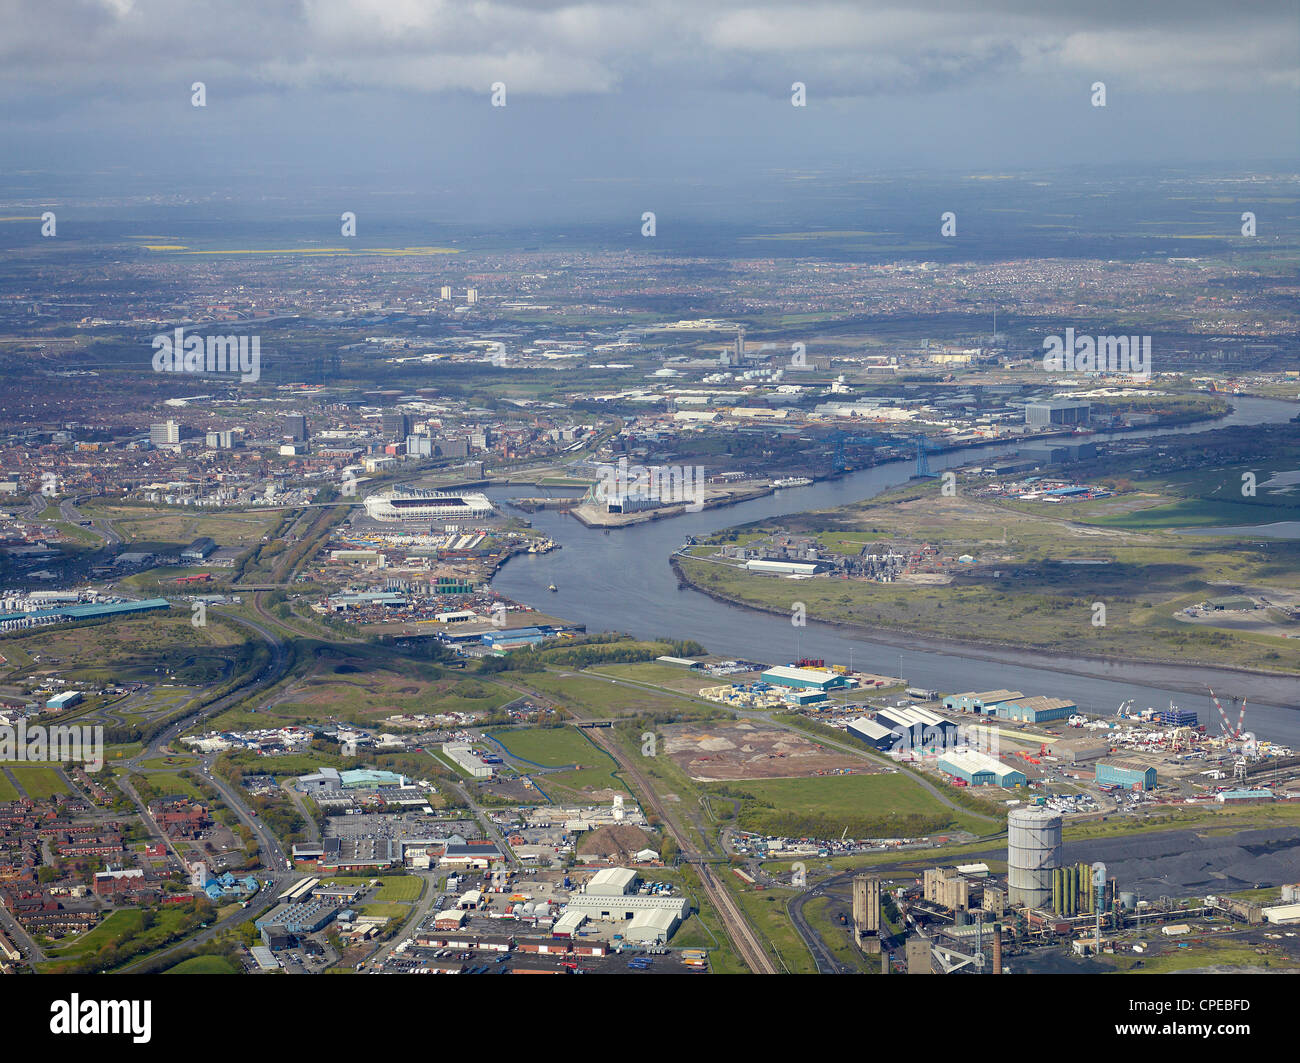 Middlesborough andTeeside from the Air, North East England, May 2012 - Stock Image